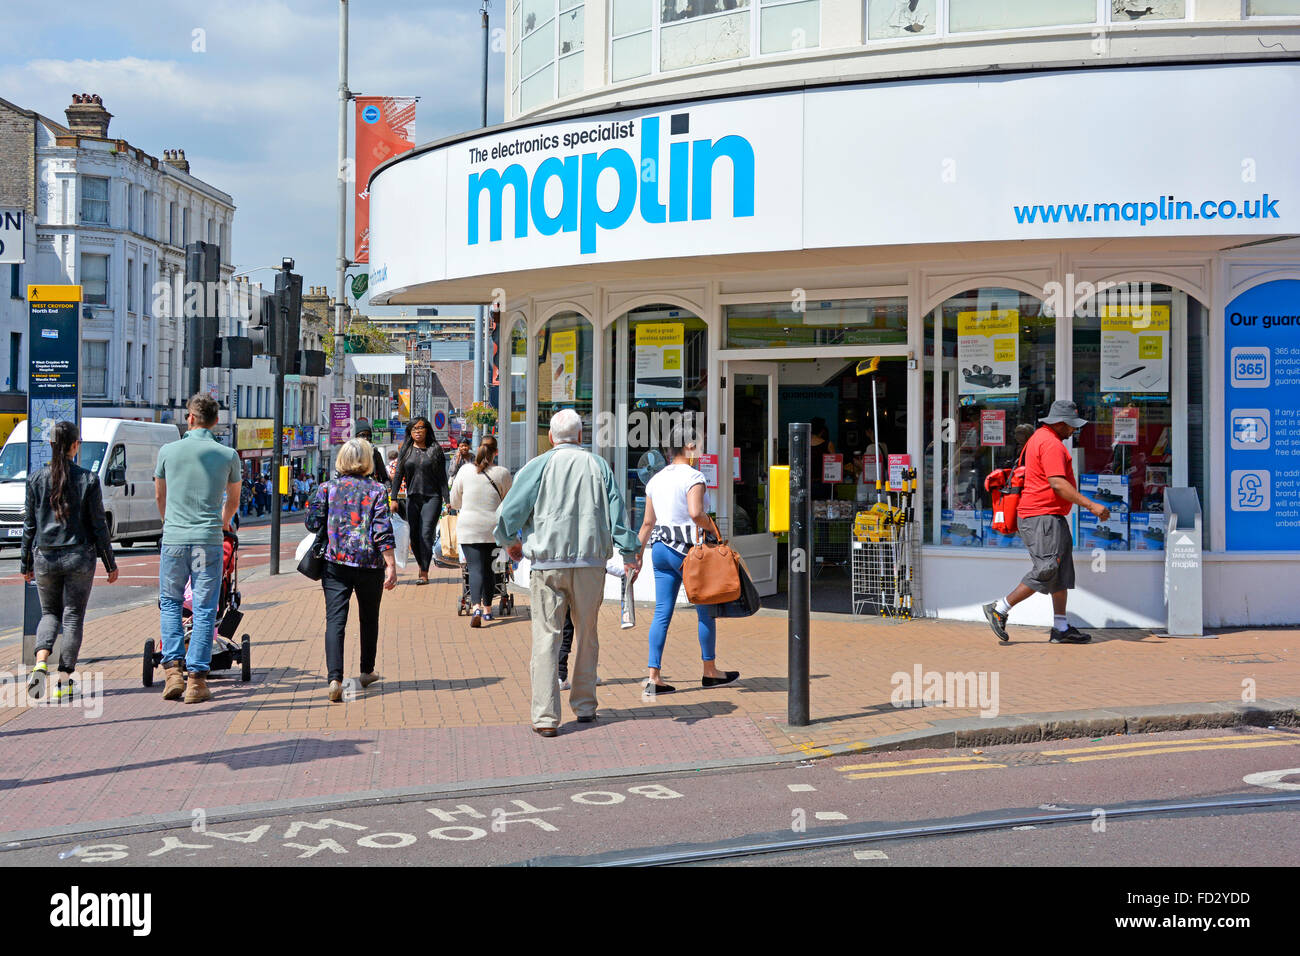 Maplin Electronics Gadgets and Computing store located on a corner site in Croydon London - Stock Image